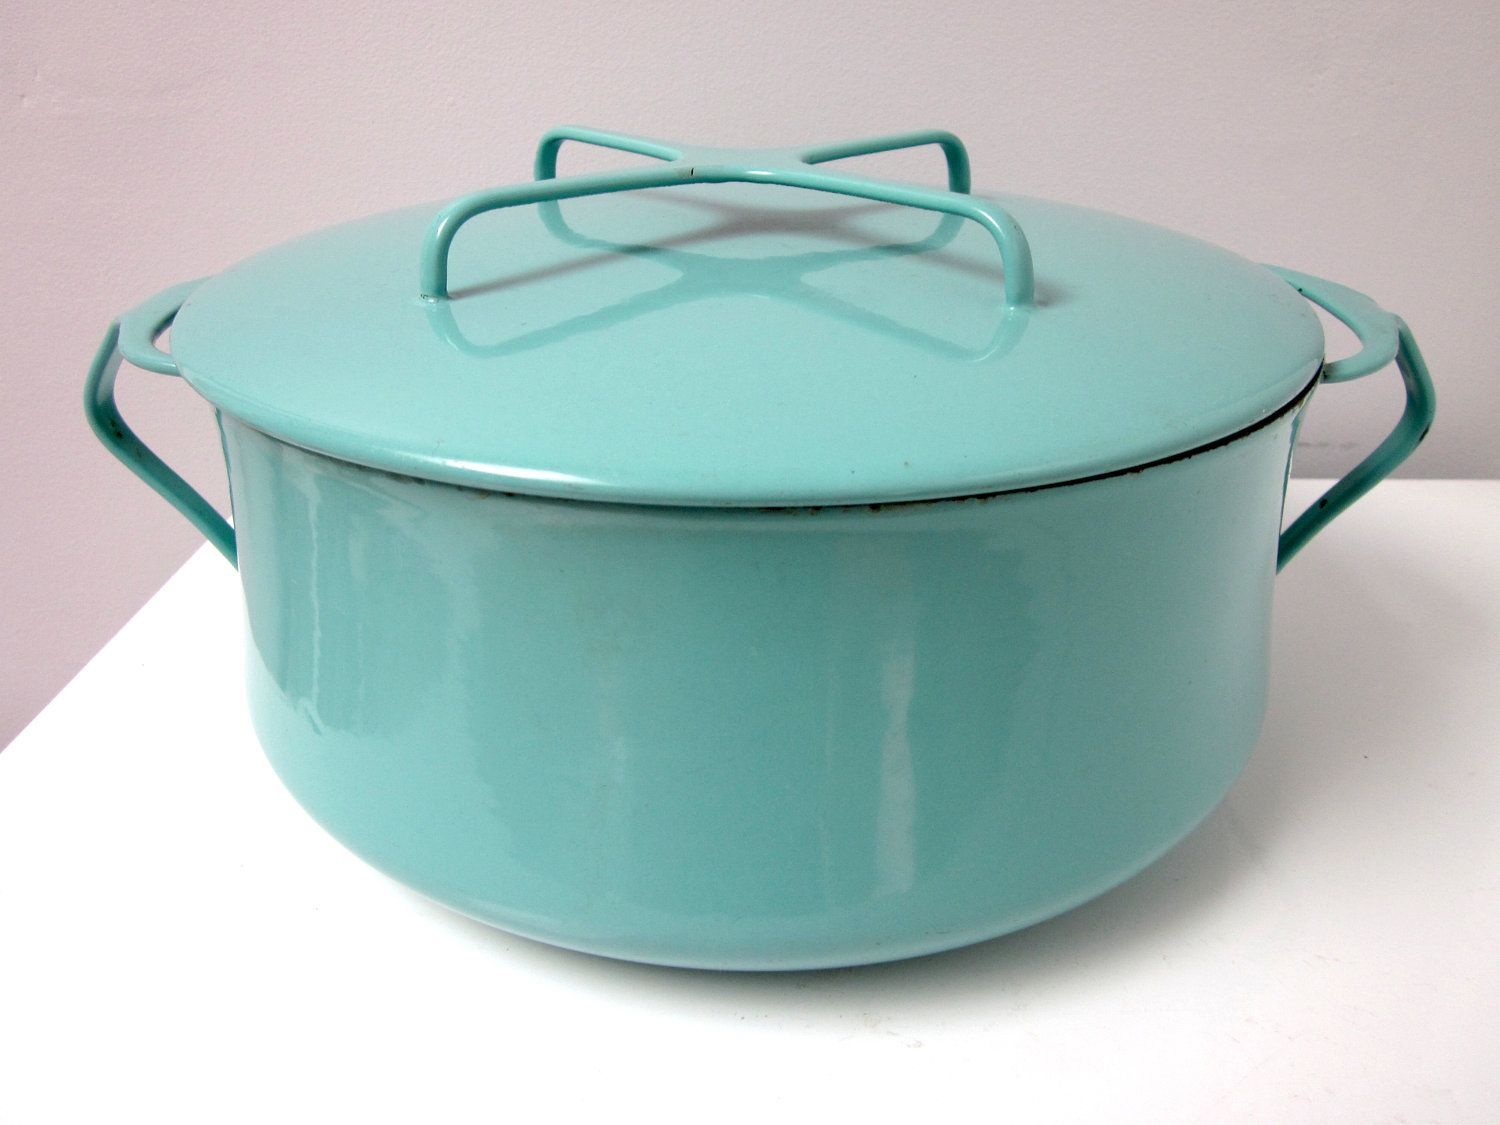 Vintage Dansk Kobenstyle Turquoise Dutch Oven By Findingamandine 55 00 Vintage Kitchen Dutch Oven Red Kitchen